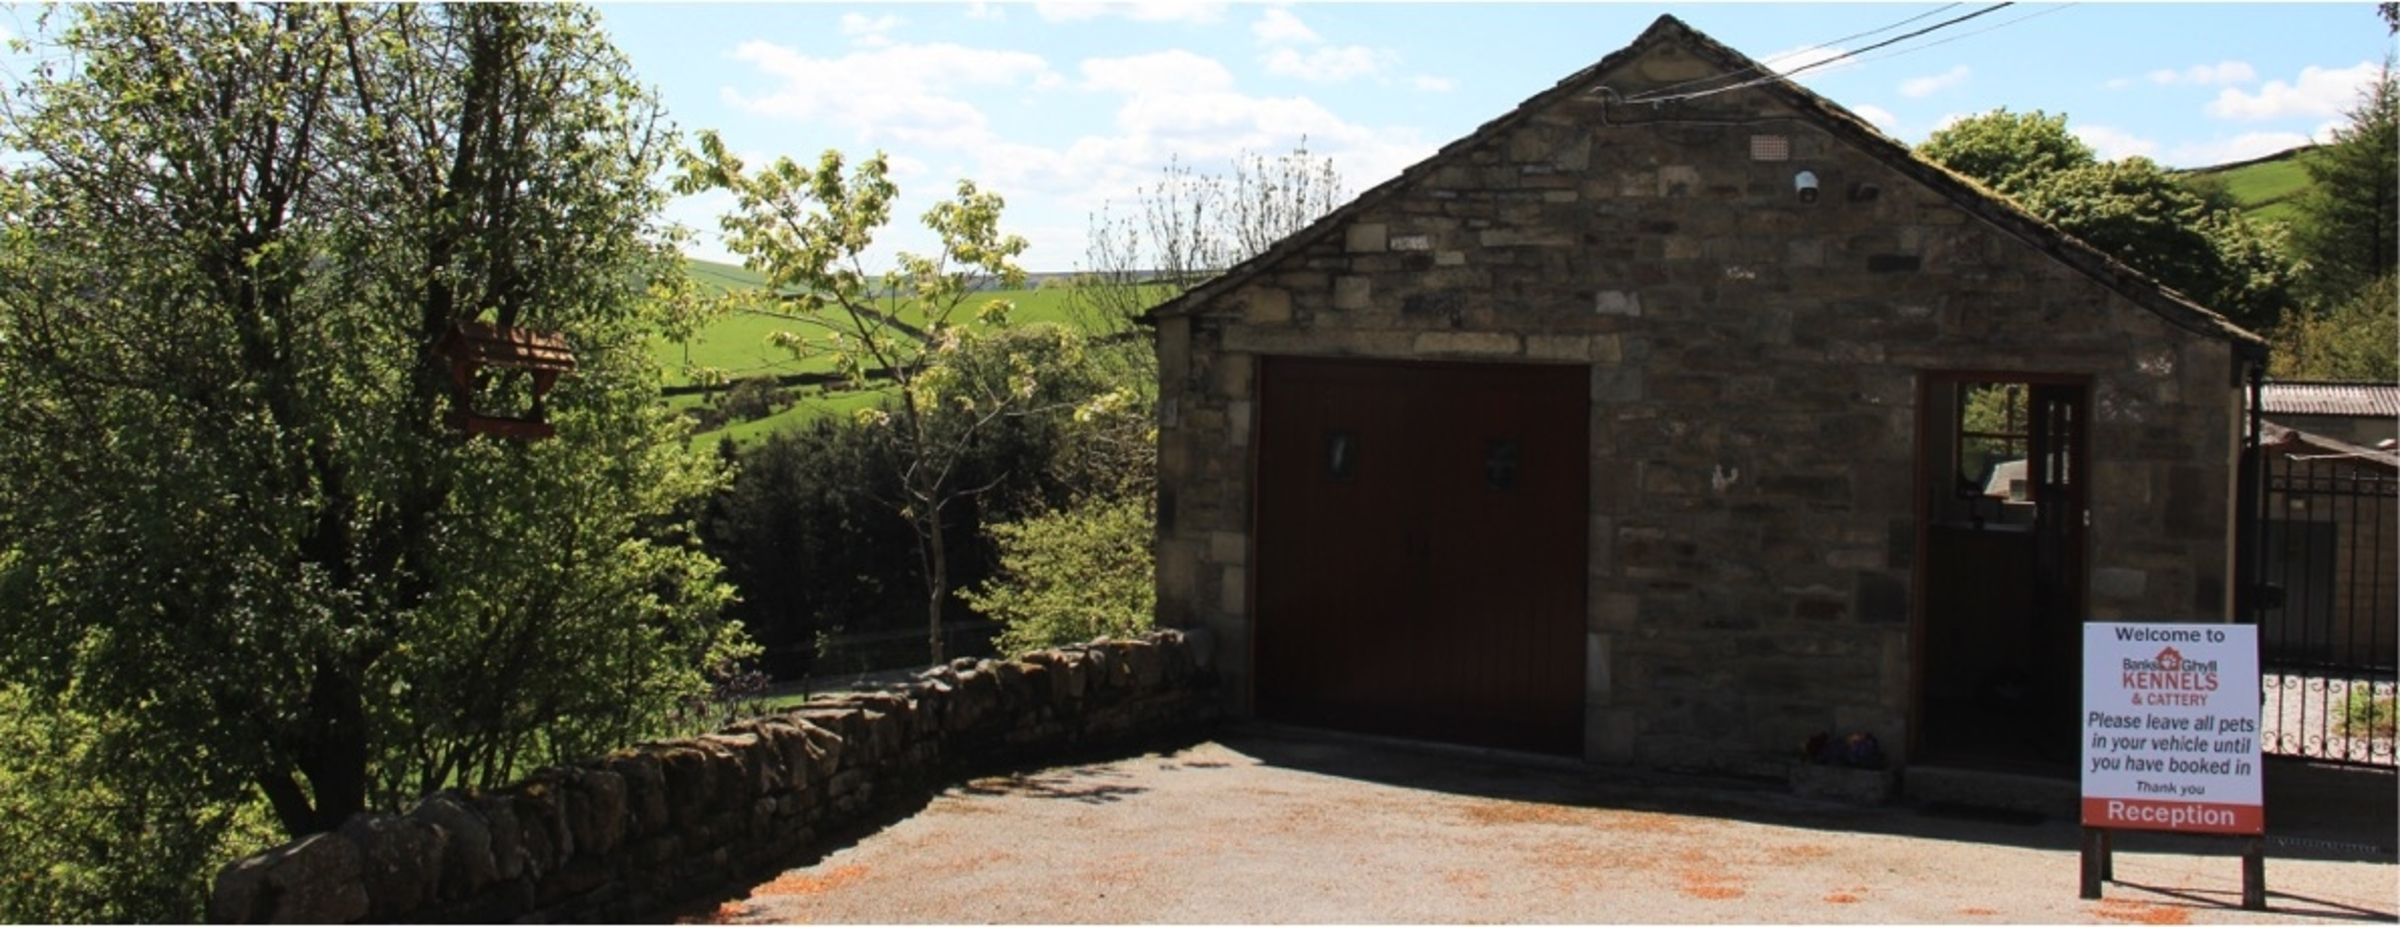 About Banks Ghyll Kennels